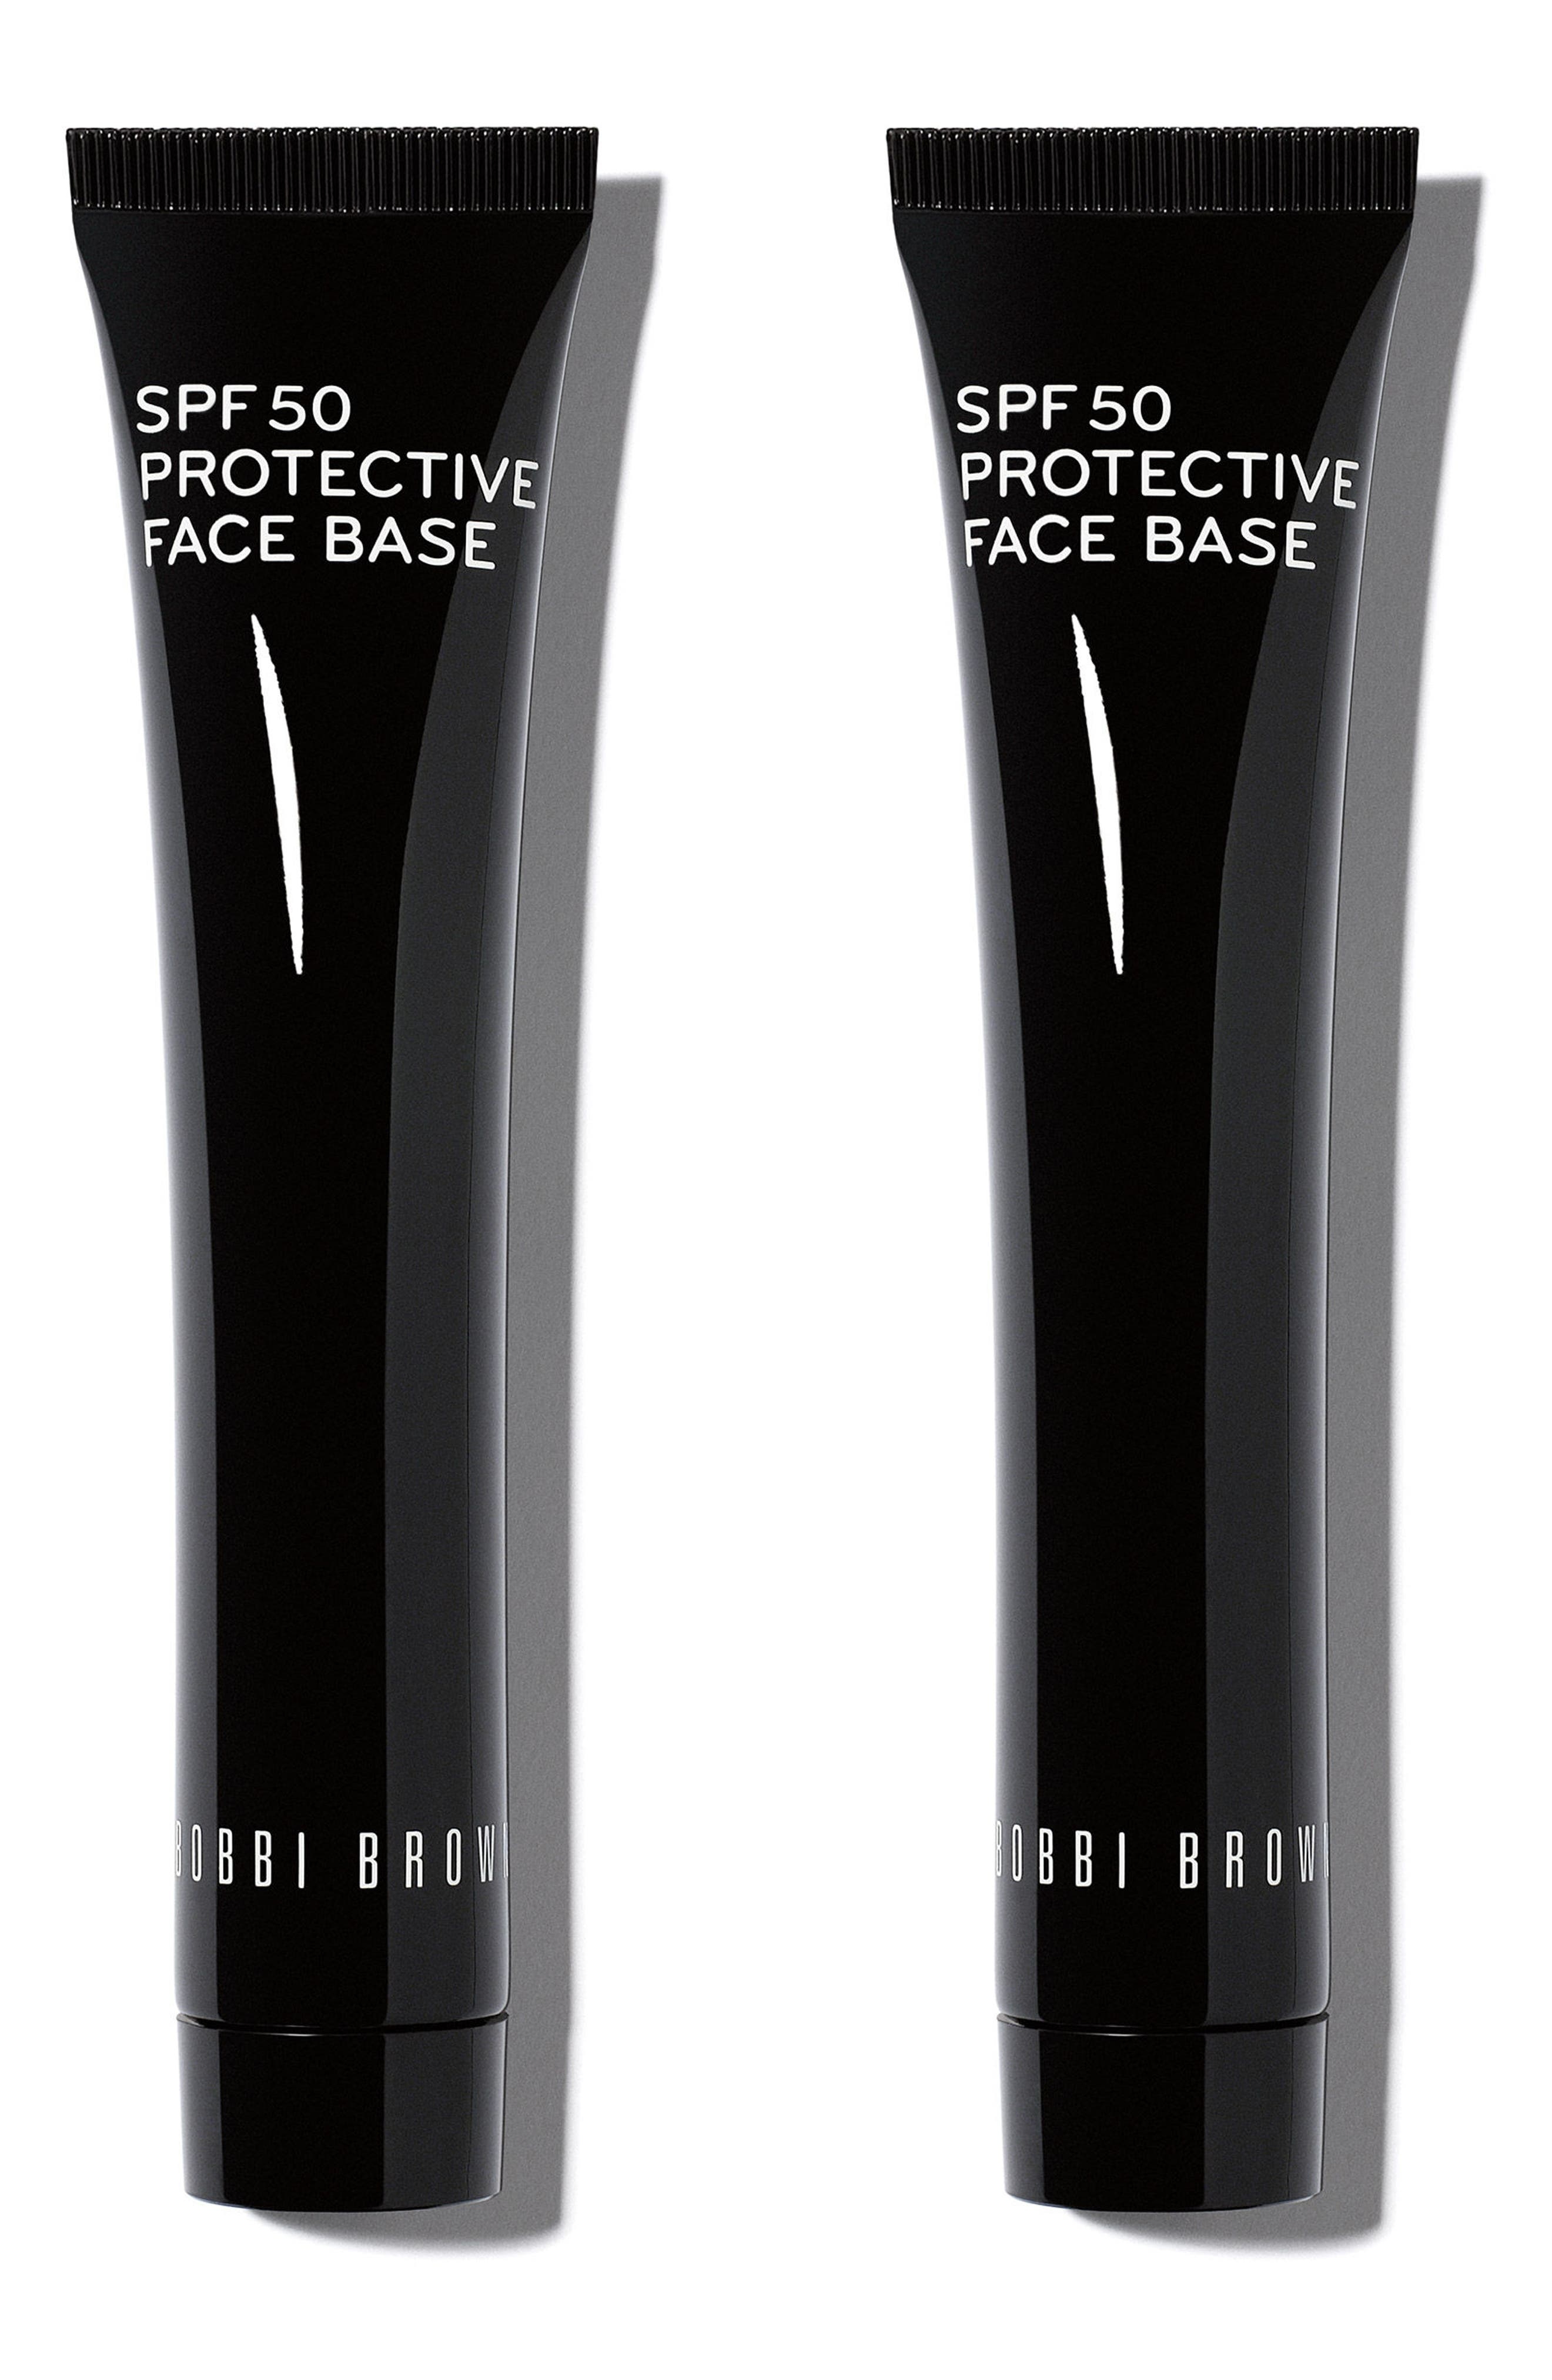 Bobbi Brown Protective Face Base SPF 50 Duo (Nordstrom Exclusive) ($86 Value)